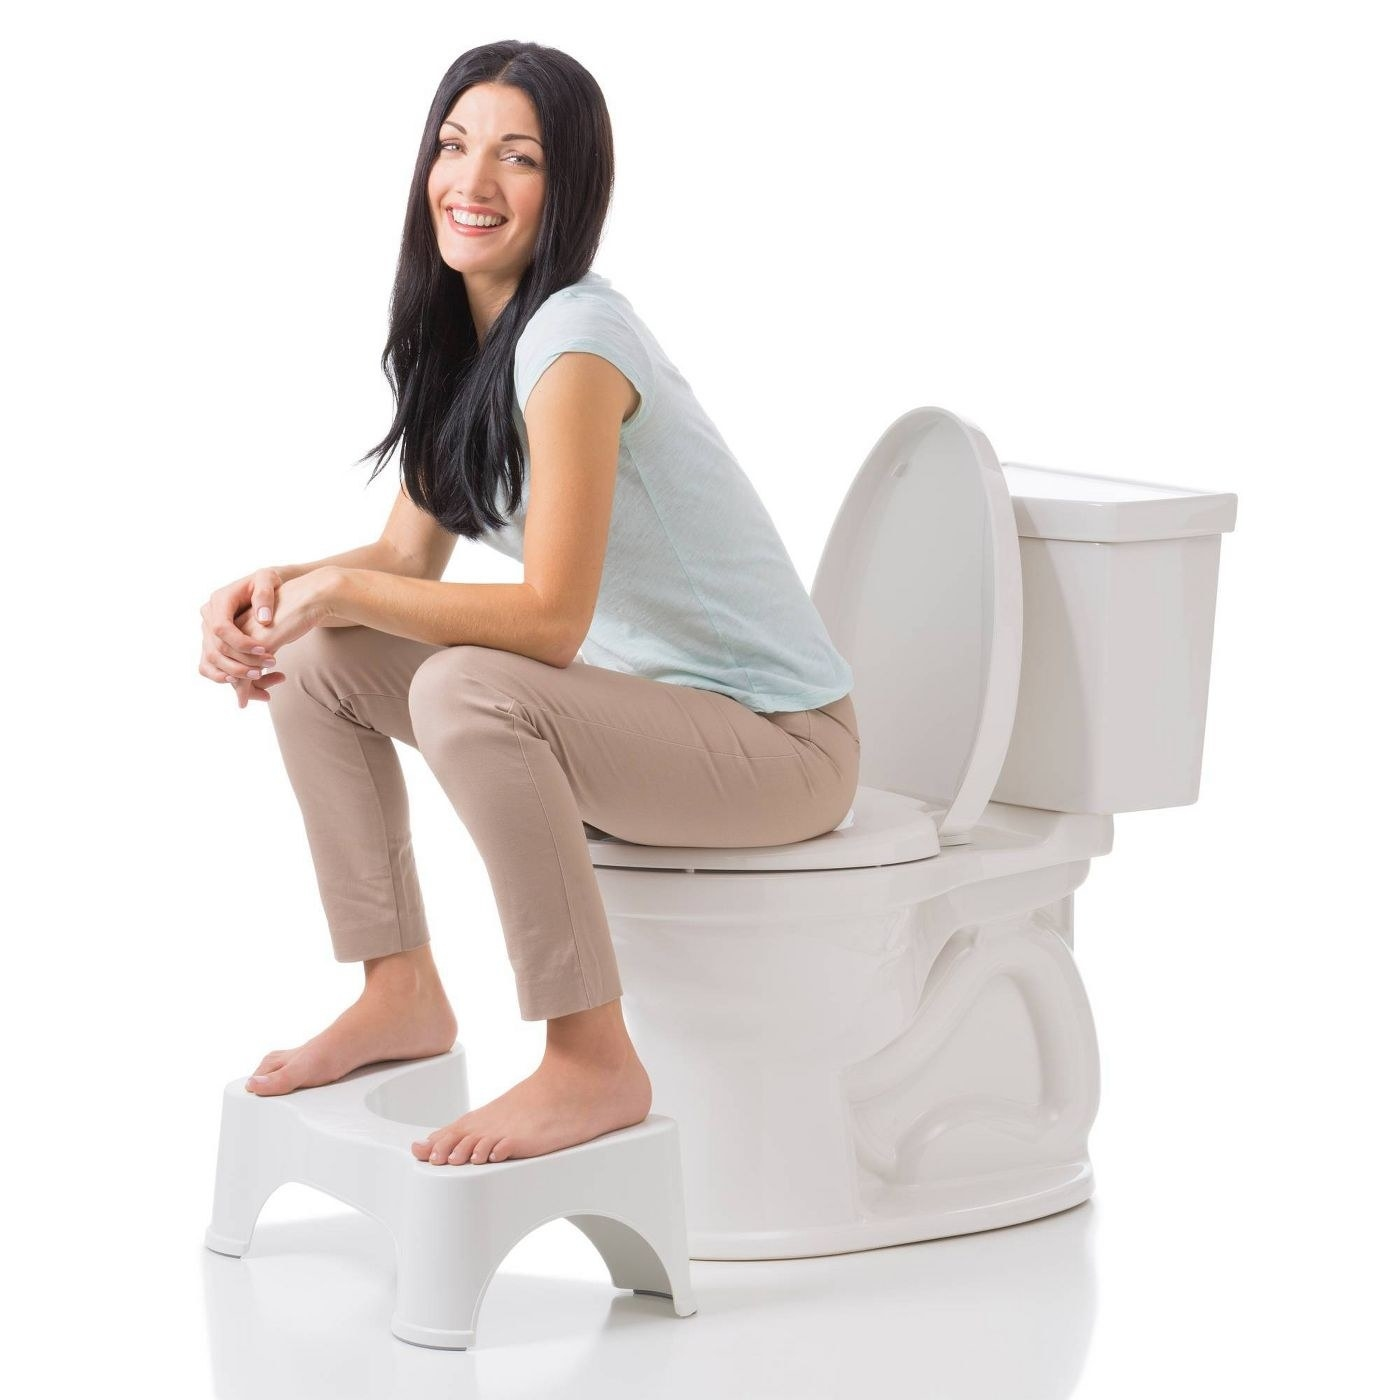 A person sitting on a toilet with a squatty potty